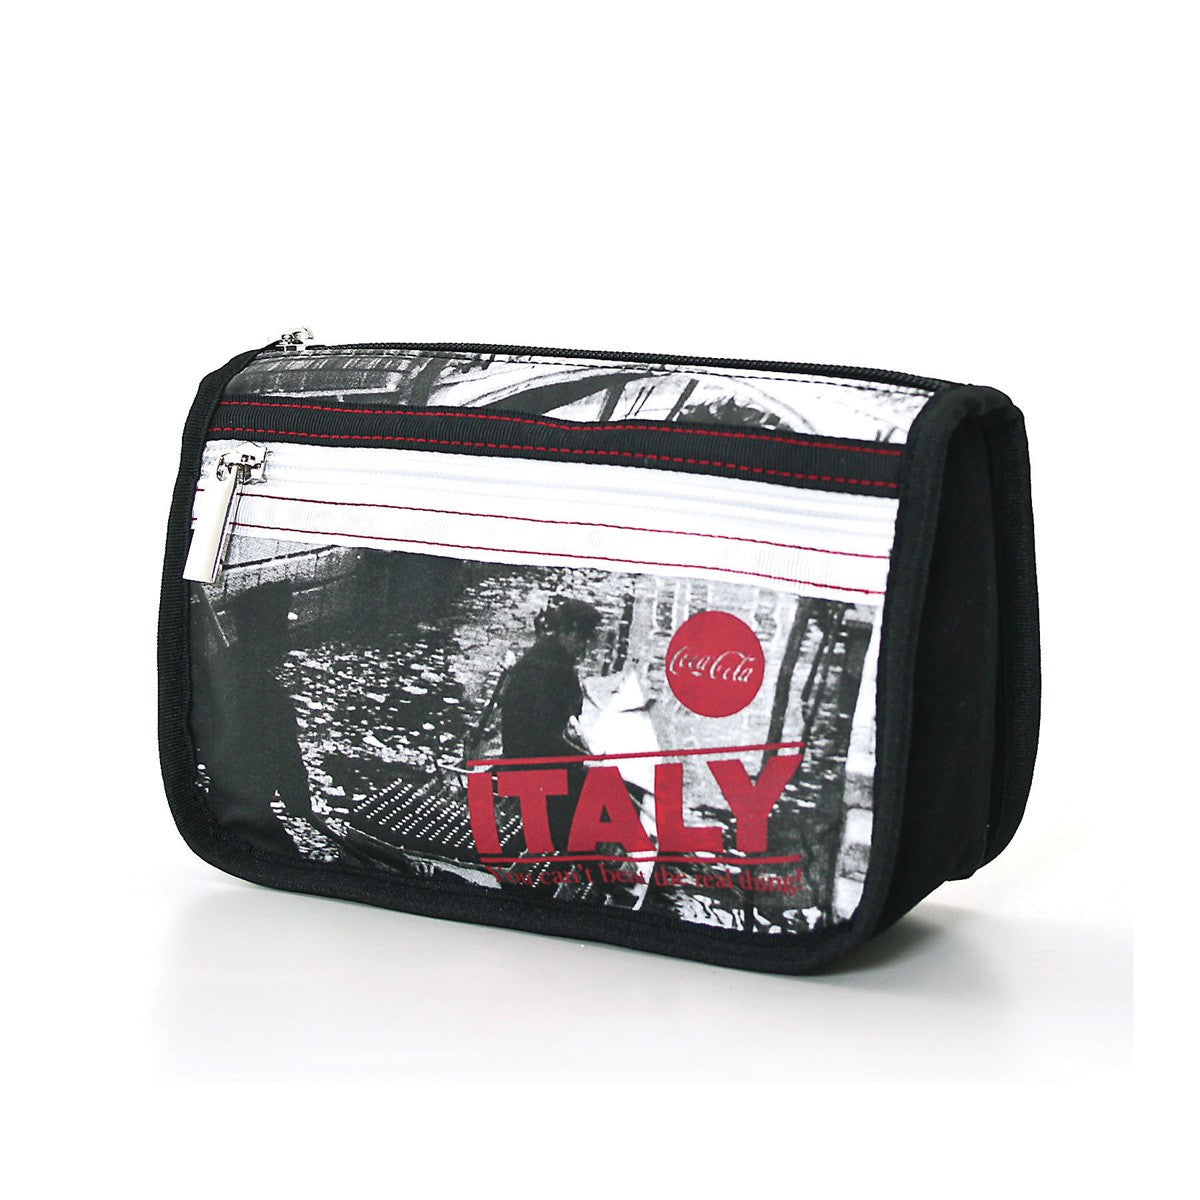 bc264804df2a Officaillay Licensed Coca-Cola Nylon Cosmetic Bag - Italy